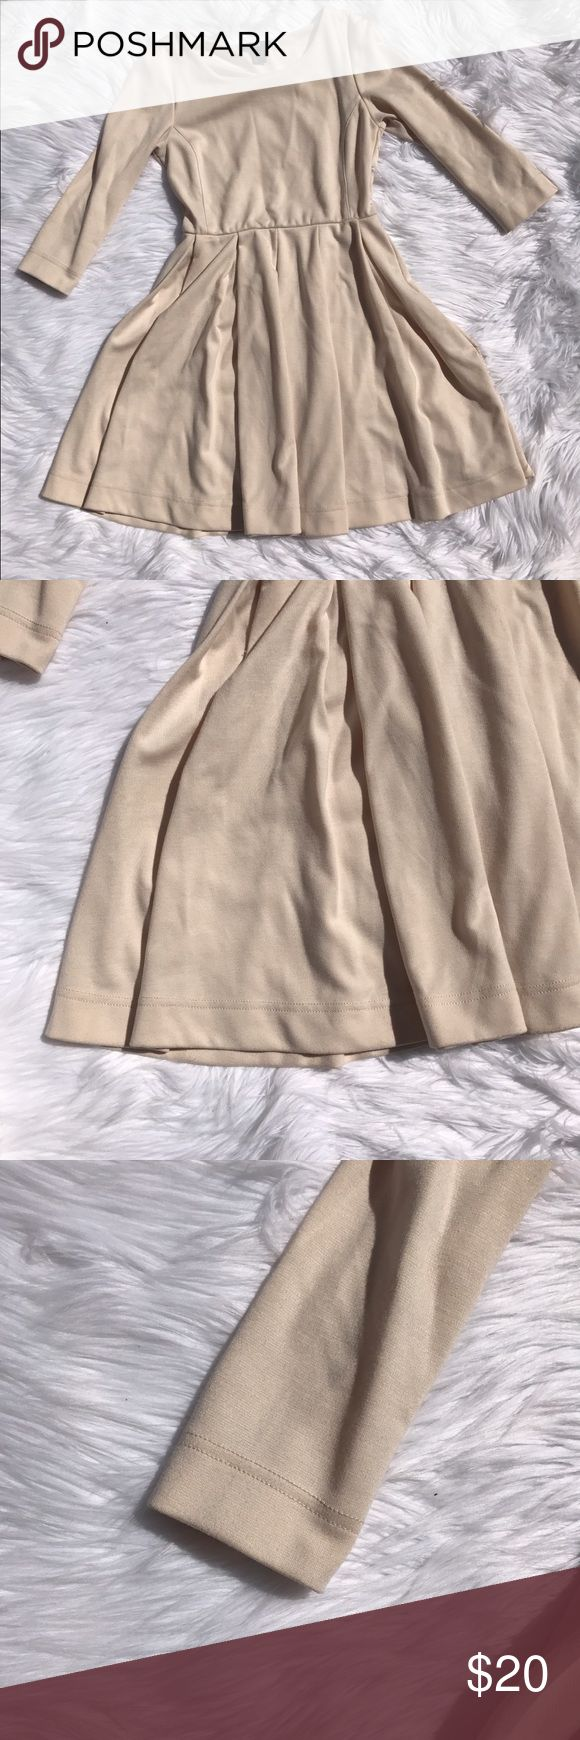 "H&M Empire Waist 3/4 Sleeve Beige Dress Size Small H&M Empire Waist 3/4 Sleeve Women's Beige Cream Dress Size Small  Gently used, please see photos for details!  Armpit to armpit - 15.5"" Length - 33.5"" H&M Dresses Midi"